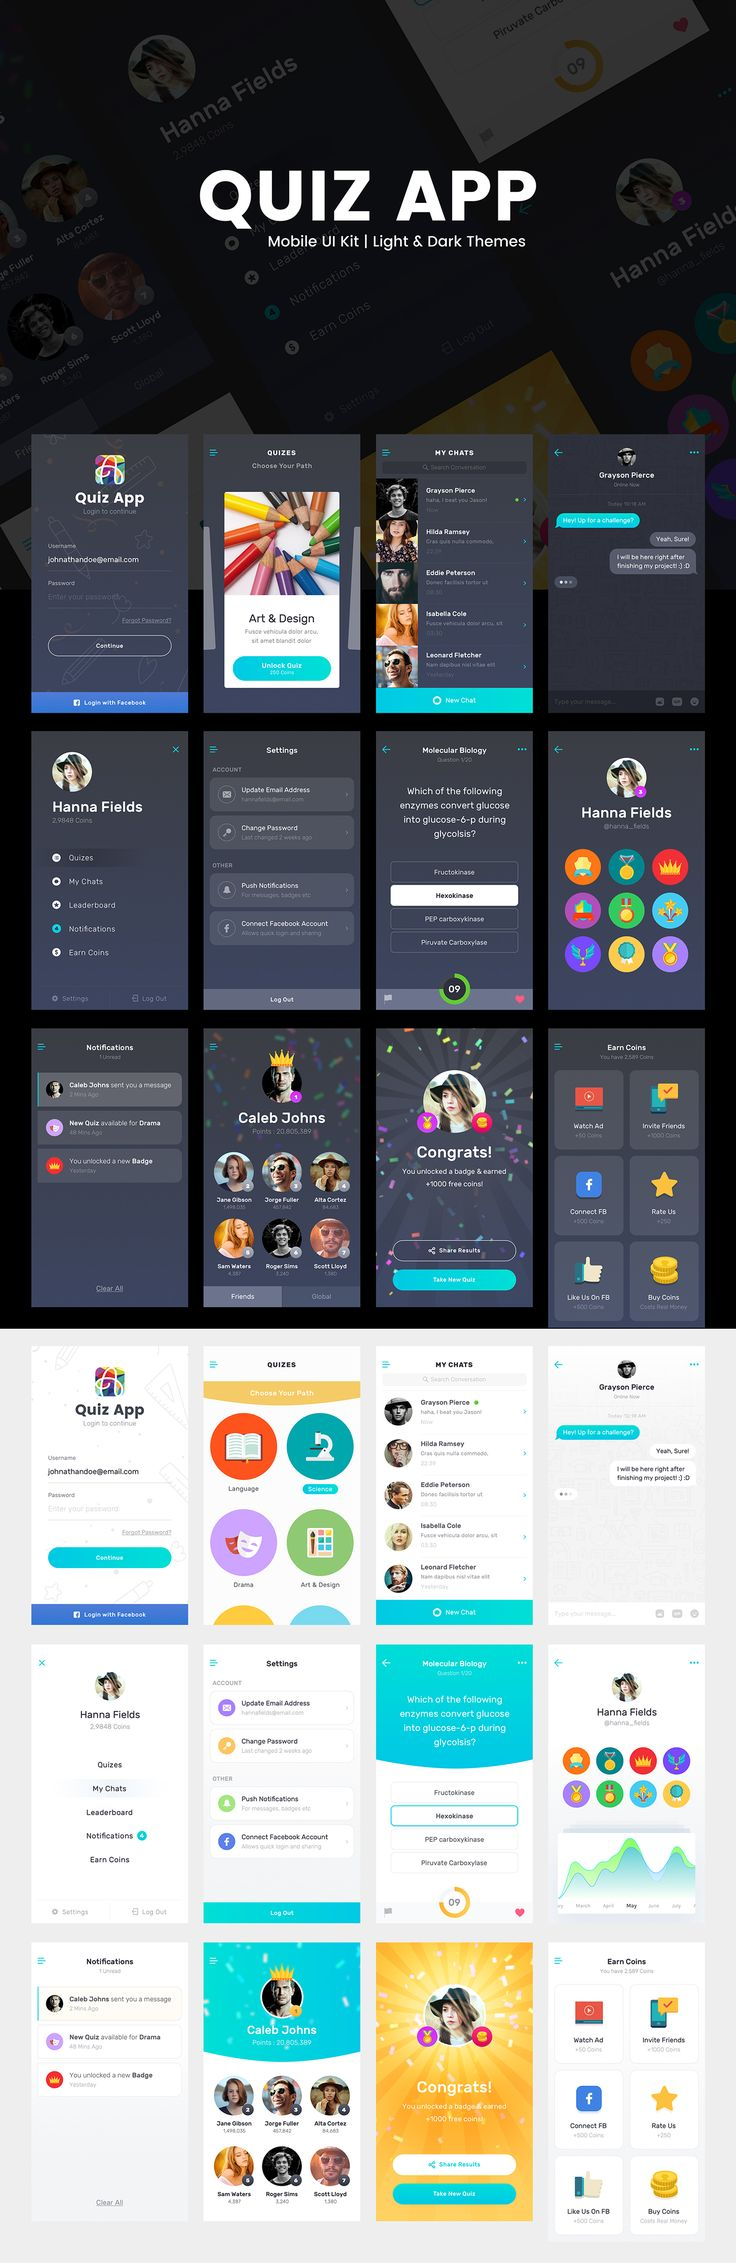 QuizApp - Mobile App UI Kit on Behance